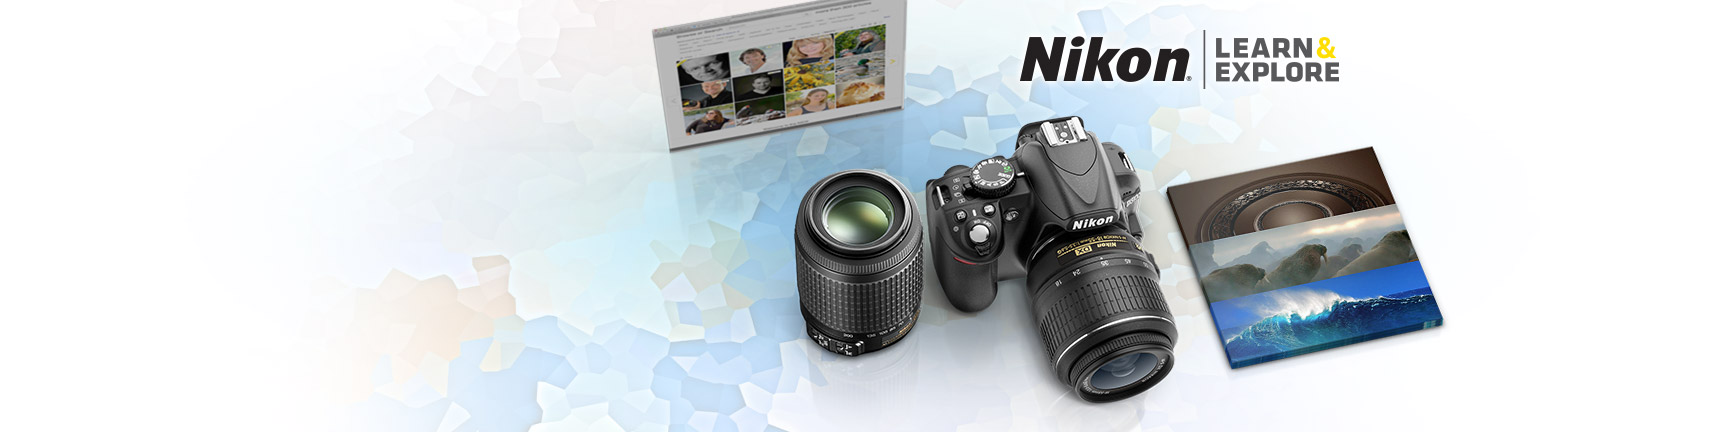 promo image showing layout of the article grid, camera with lens and showcased images from the Nikon Ambassadors